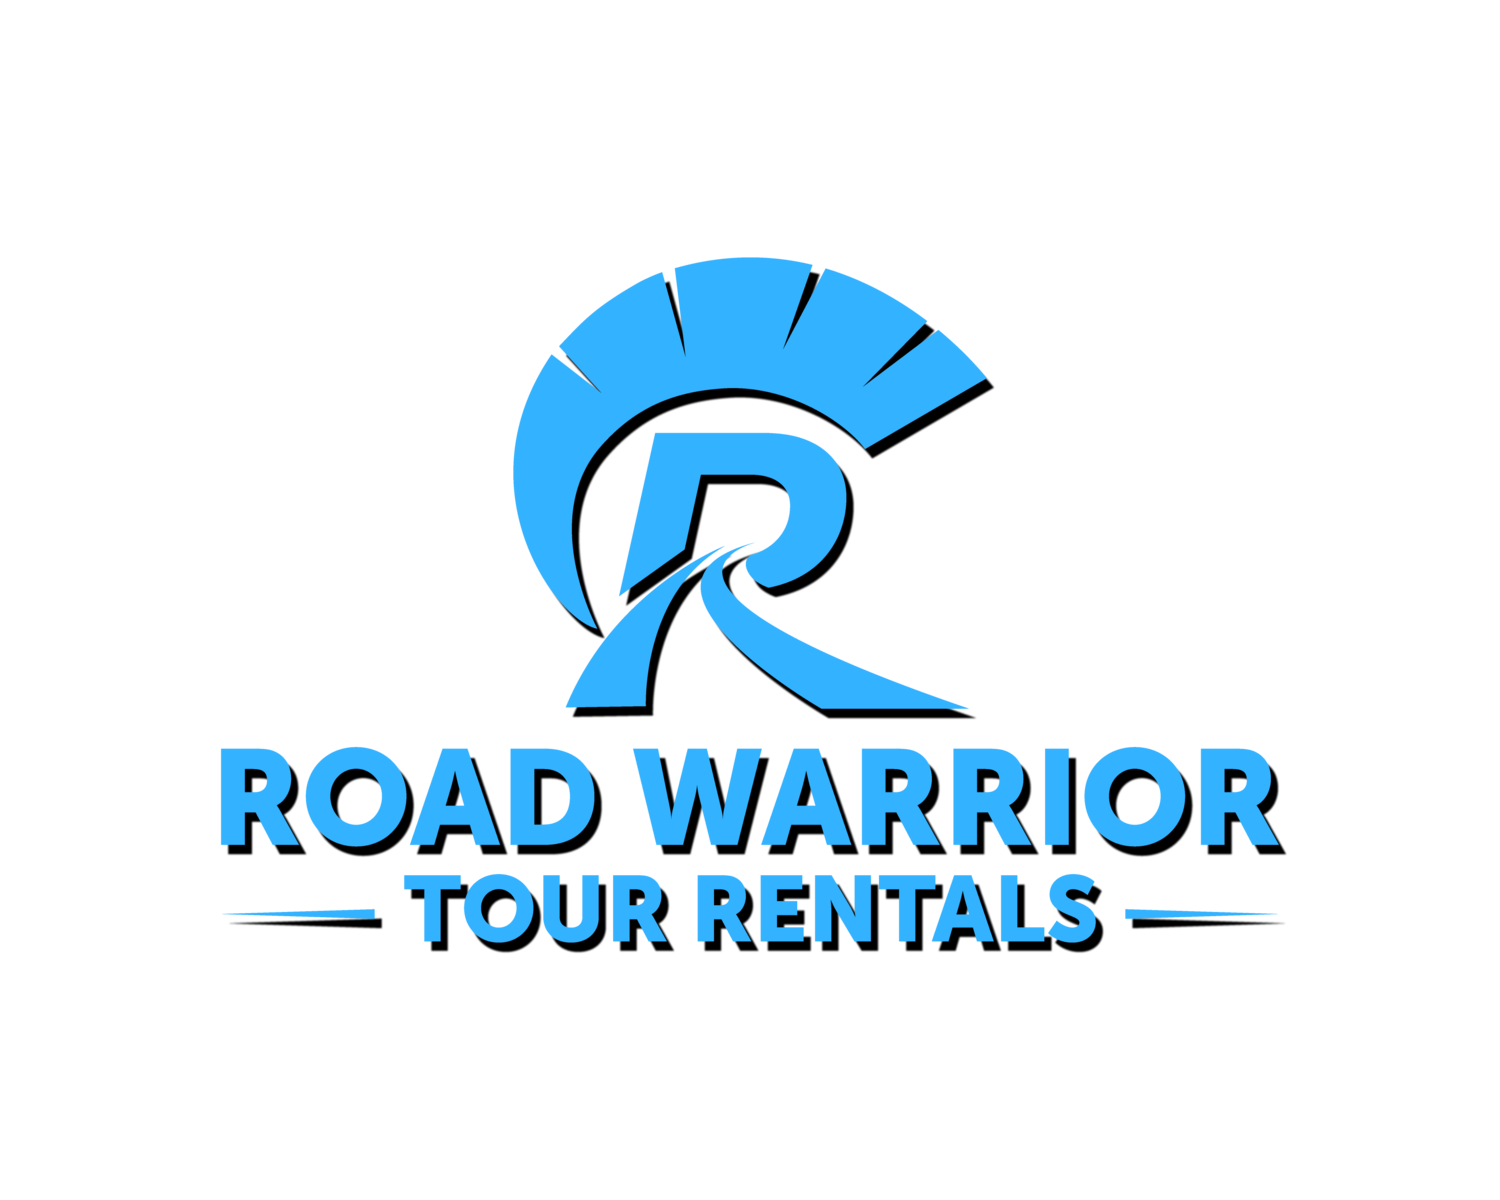 Road Warrior Tour Rentals